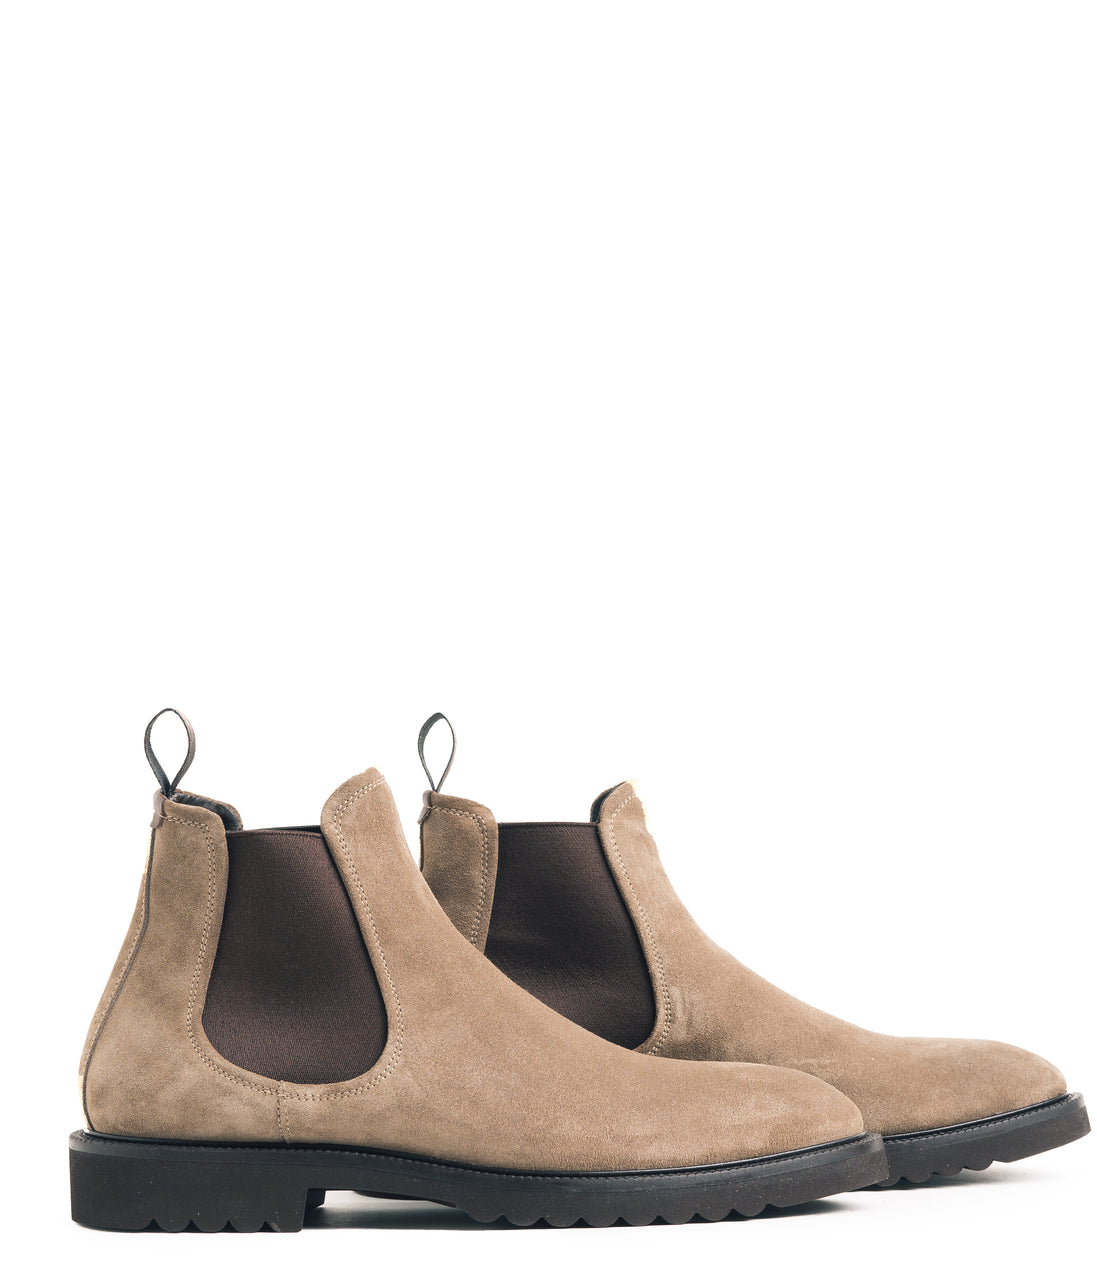 Chelsea Nubuck Boot - Sand - Good Man Brand - Chelsea Nubuck Boot - Sand - Footwear - Good Man Brand